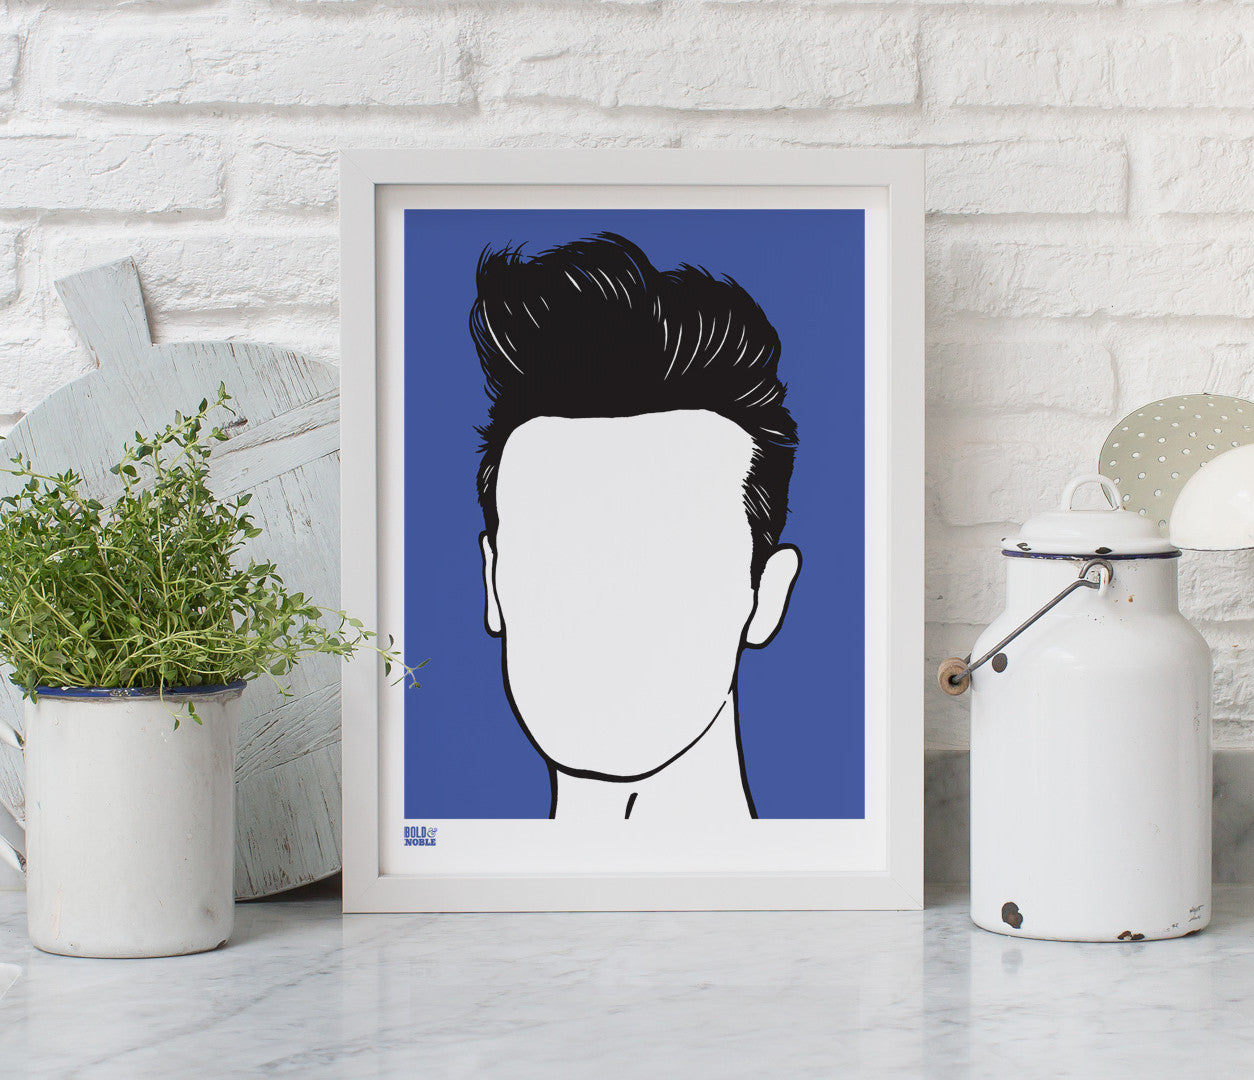 Wall Art ideas: Economical Screen Prints, Morrissey in Blue